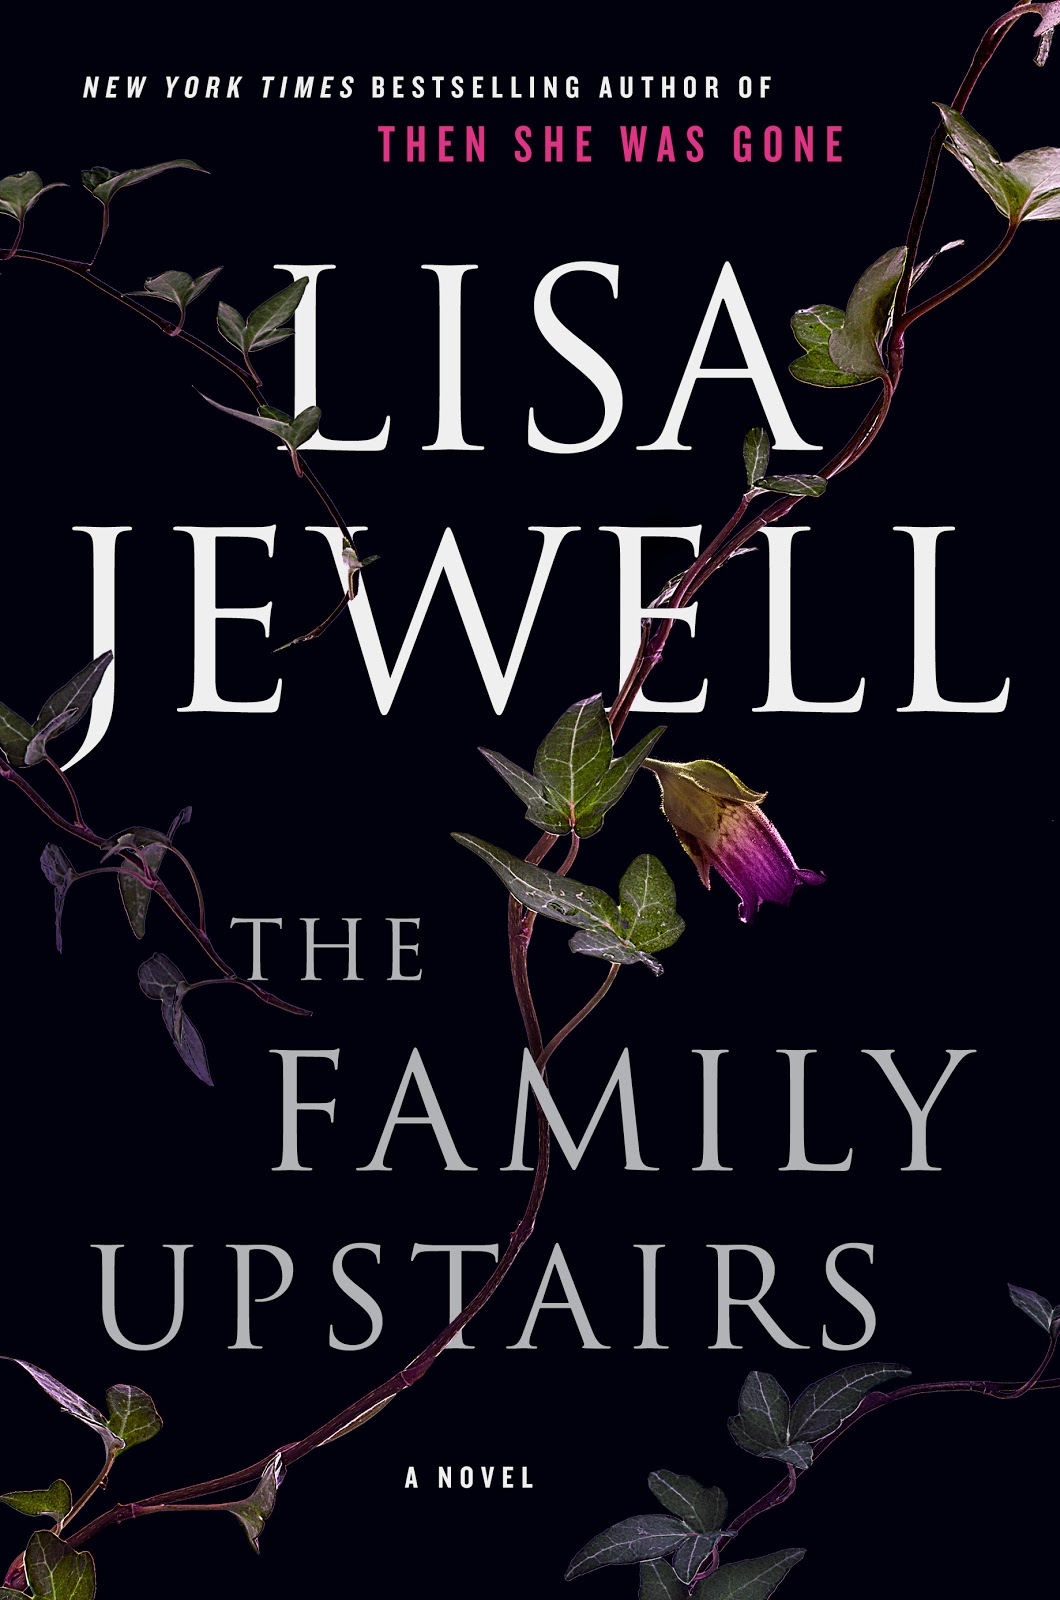 The family upstair by Lisa Jewell: a Cult in Chelsea